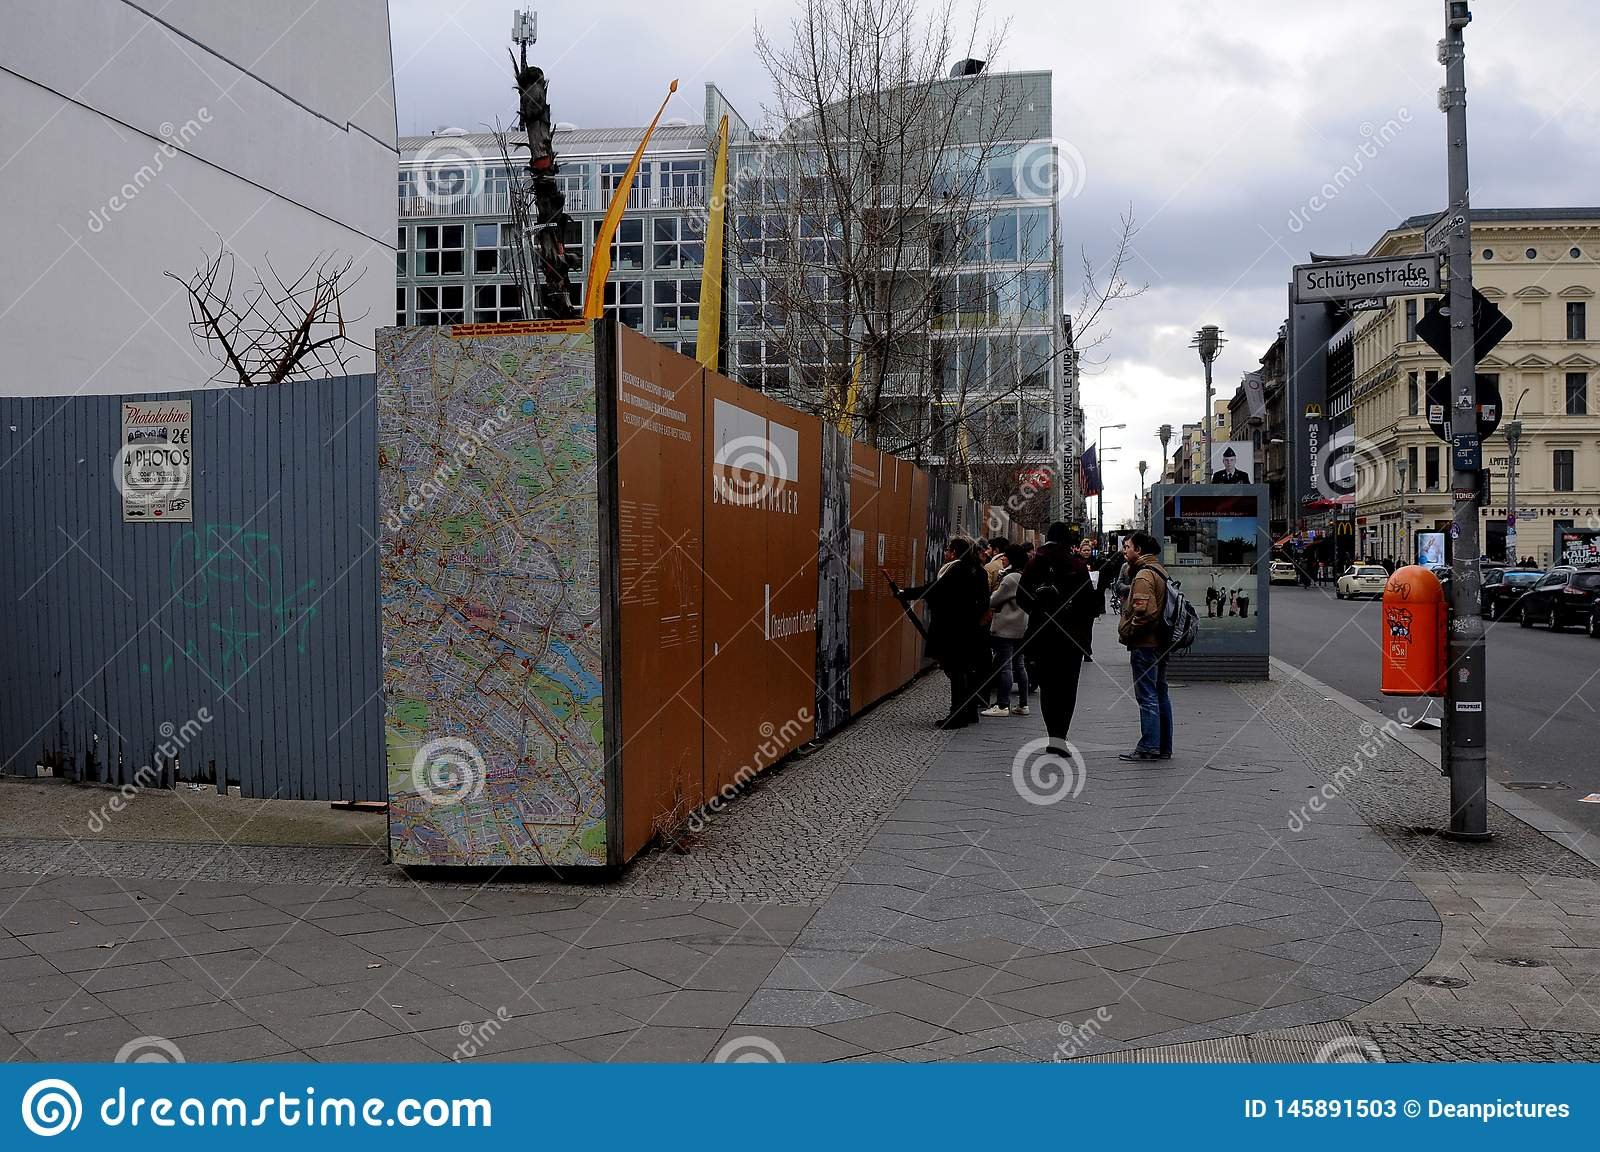 VISITORS AND LIFE AT CHECK POINT CHARLIES BERLIN. Check point charlie/berlain/ 05.March 2019. _Images are from Check point charlie, berlin 1989-2019 this Berlin stock photos